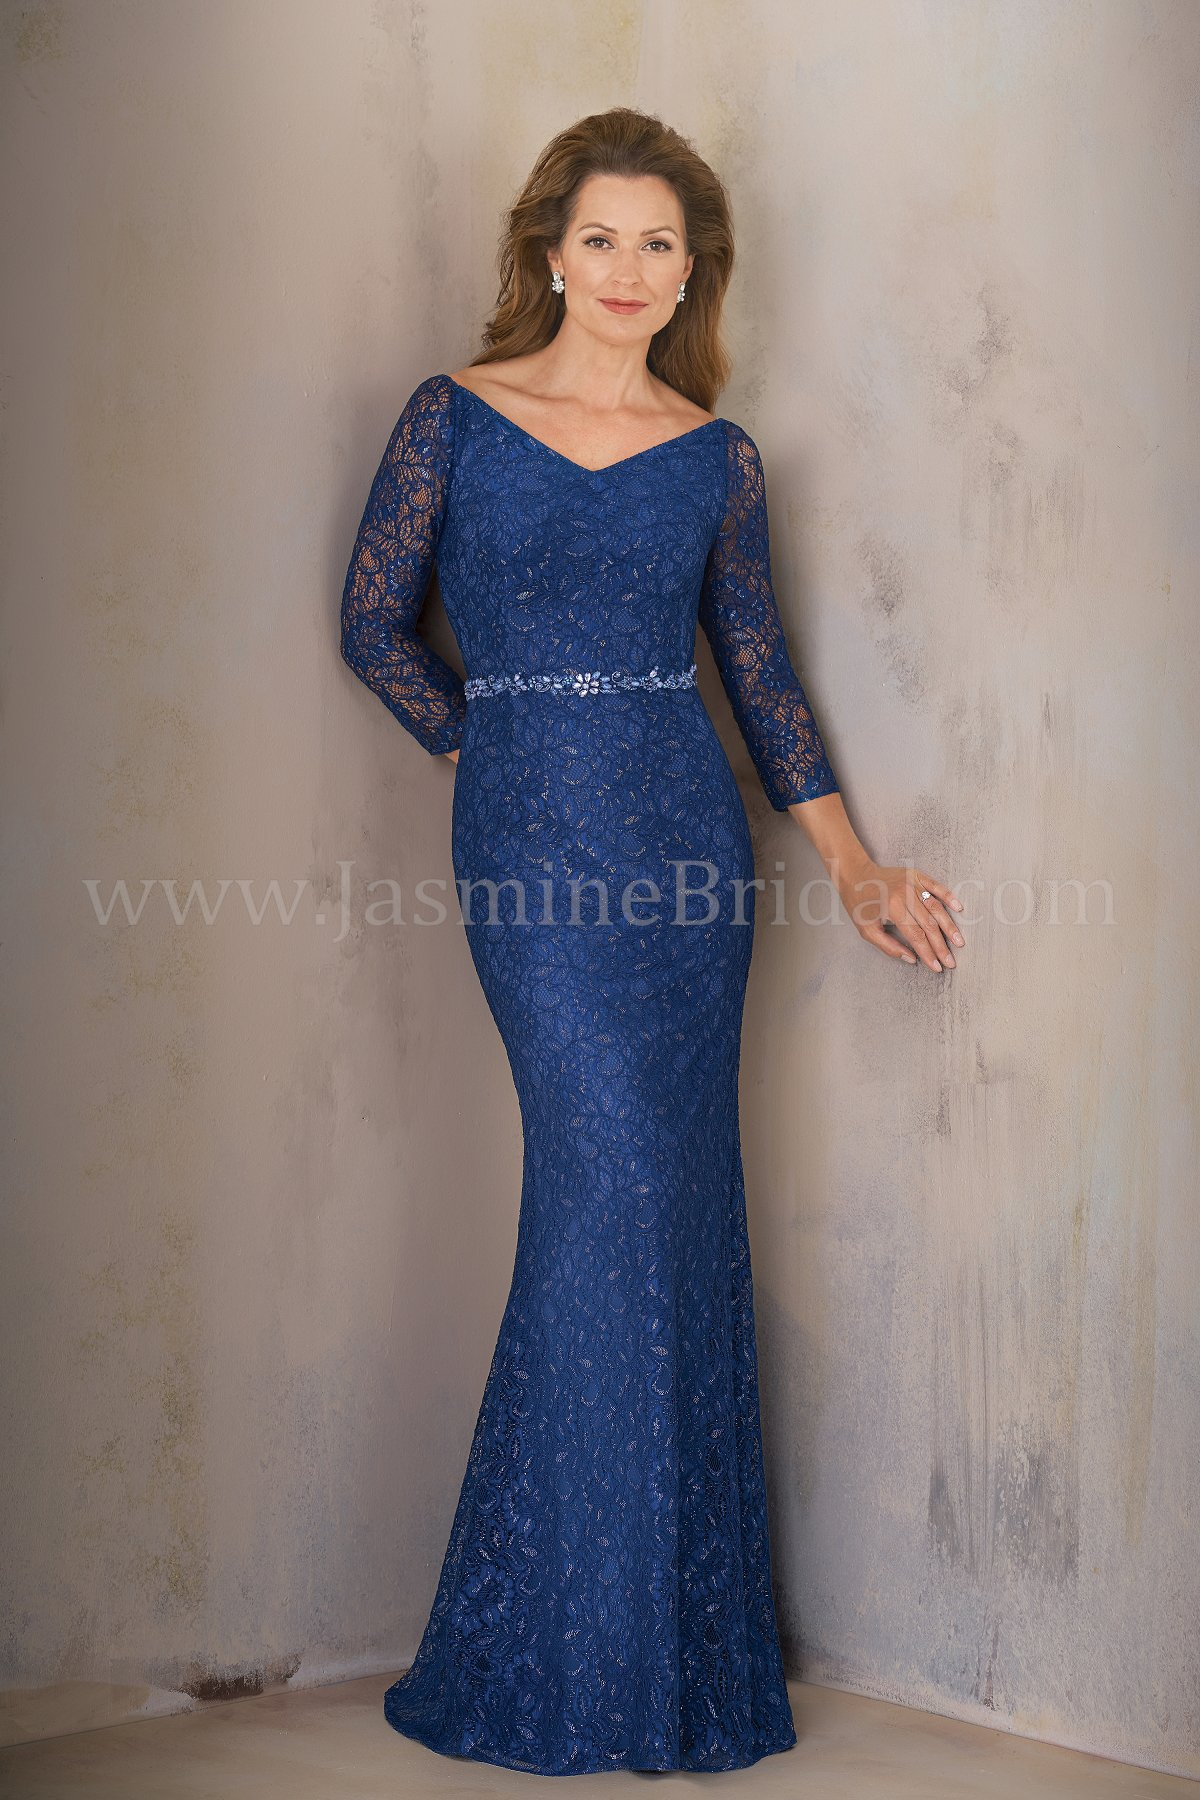 K208014 Long Portrait Neckline Lace Mob Dress With Sleeves